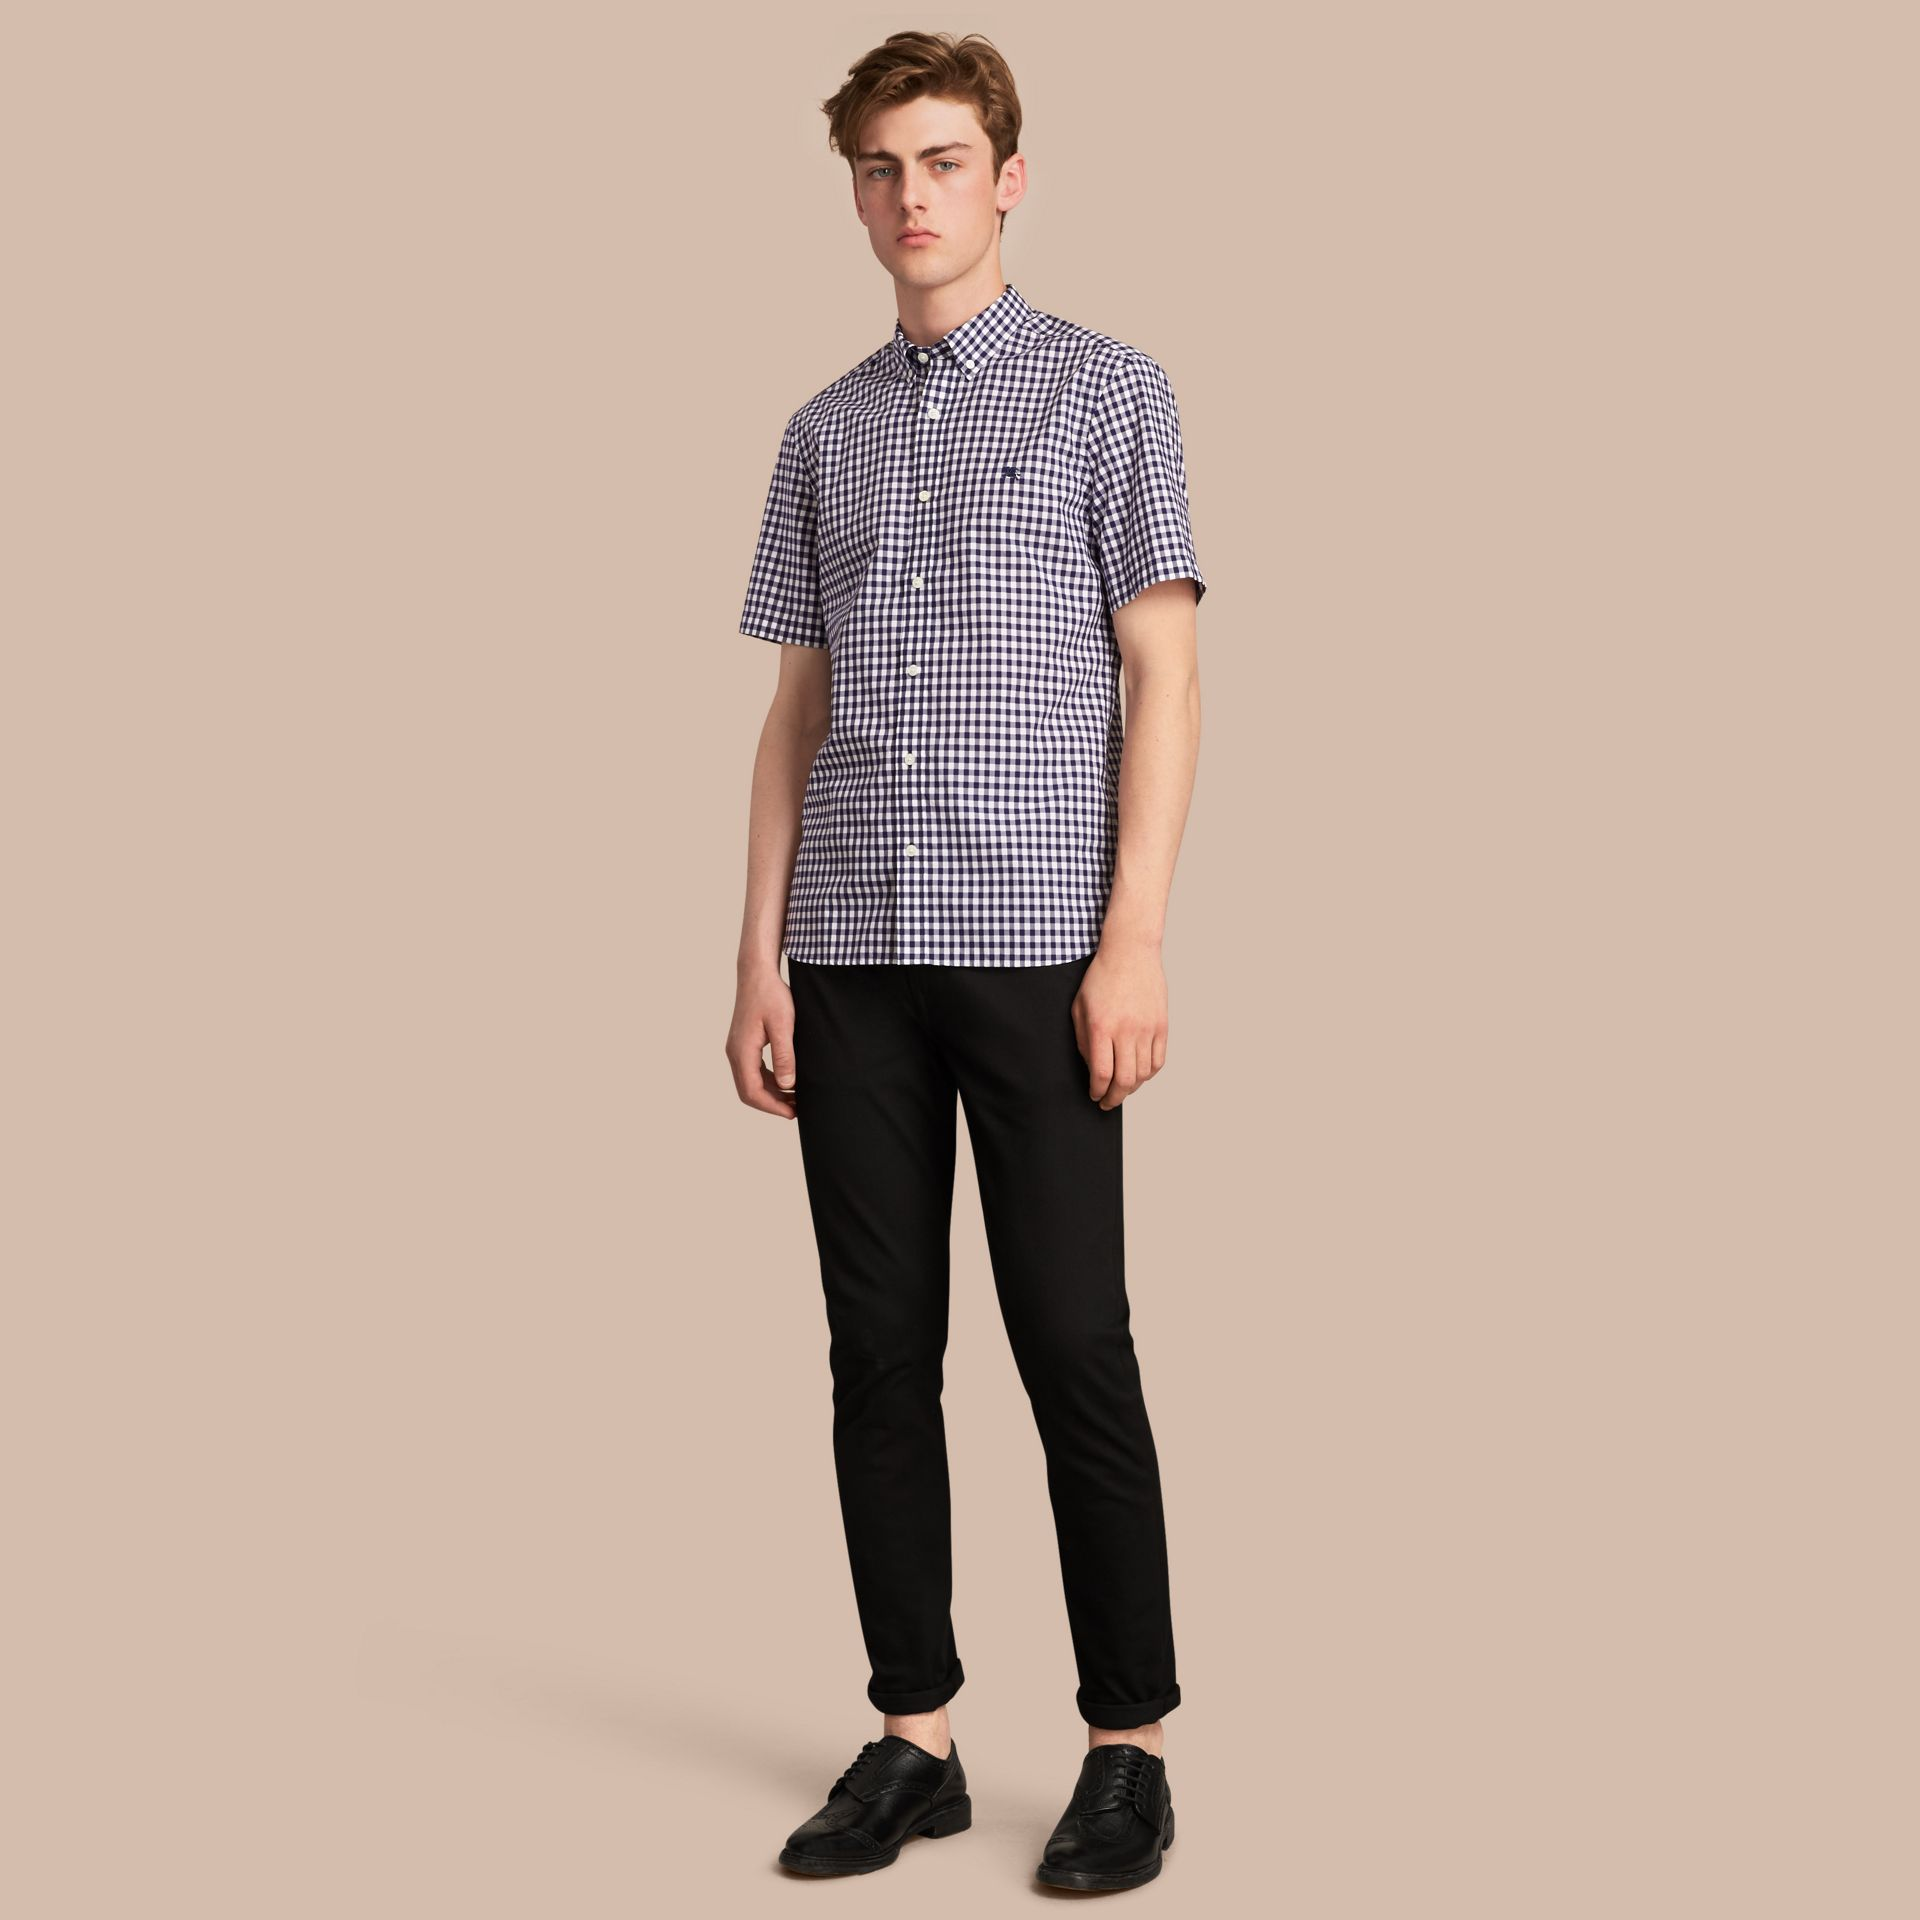 Short-sleeve Button-down Collar Cotton Gingham Shirt in Navy - Men | Burberry - gallery image 1